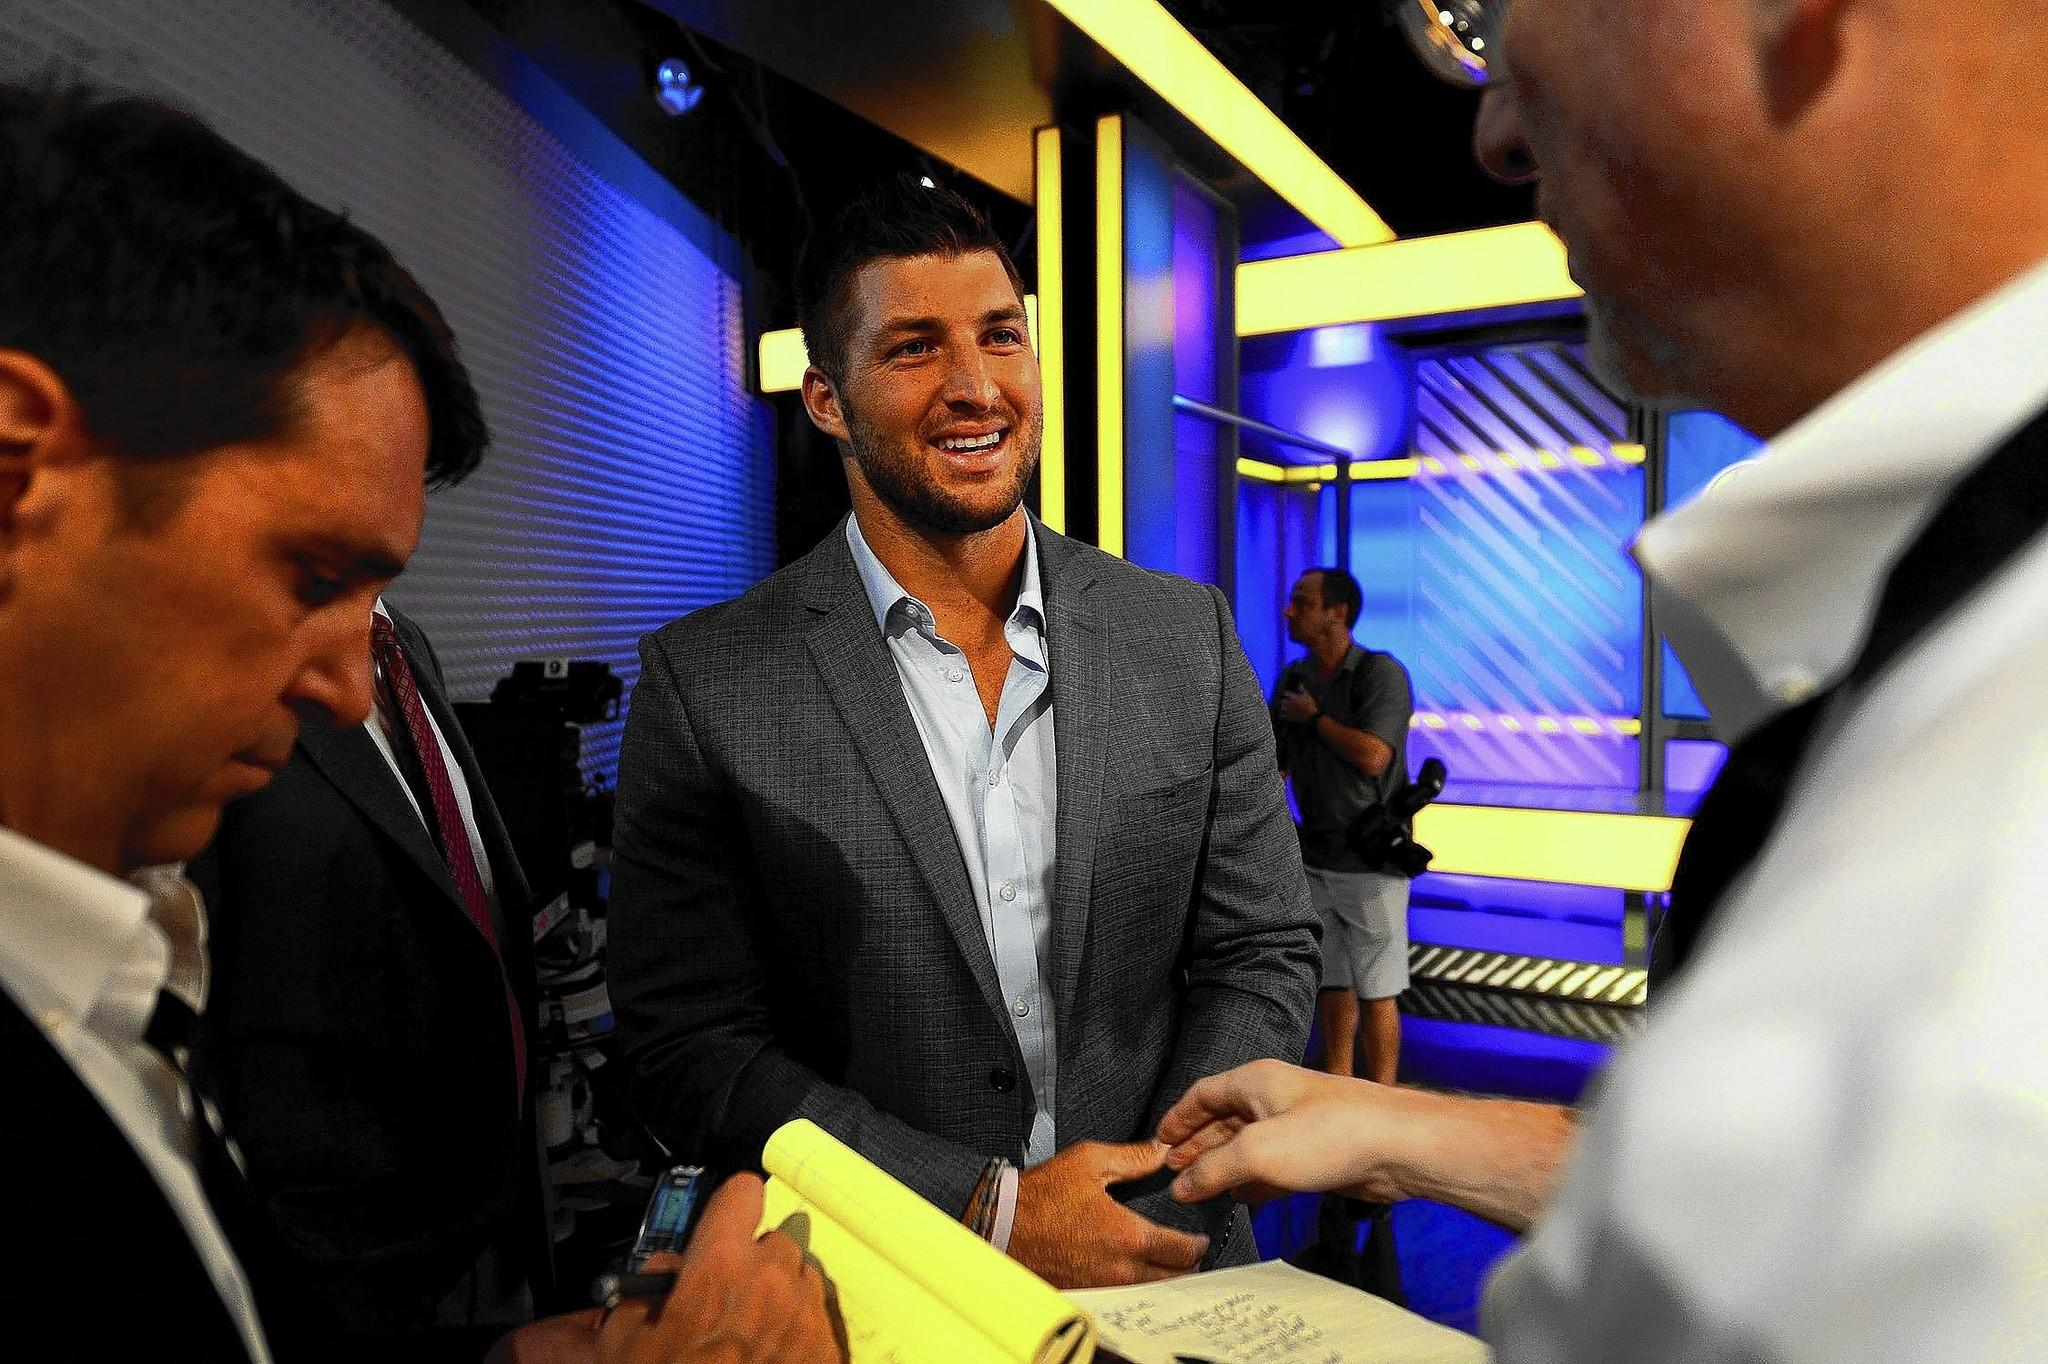 Analyst Tim Tebow, center, smiles as he answers questions from the media on the set of SEC Nation at the ESPN studios in Charlotte, N.C., on Wednesday, Aug. 6, 2014.